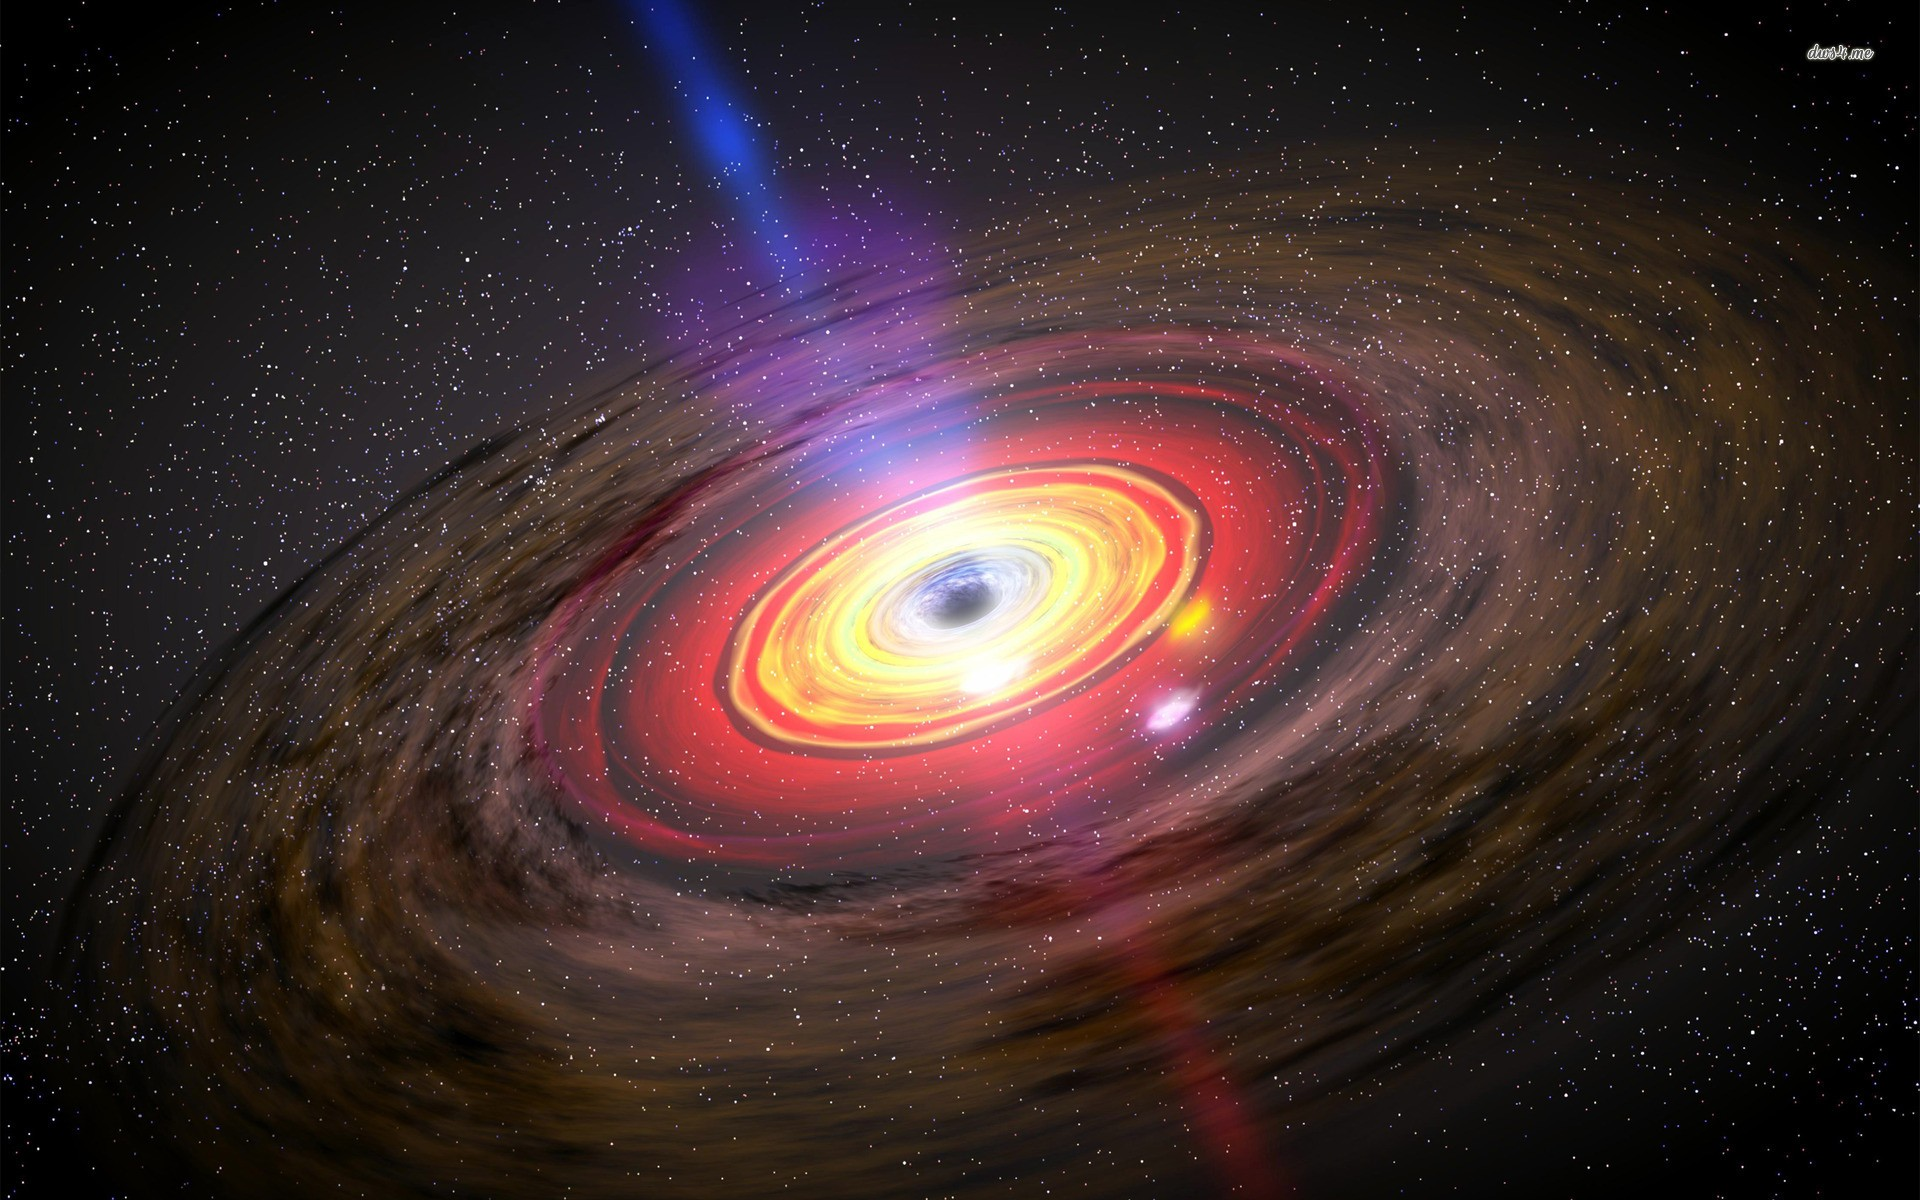 Black Hole Wallpaper Download Free Awesome Wallpapers